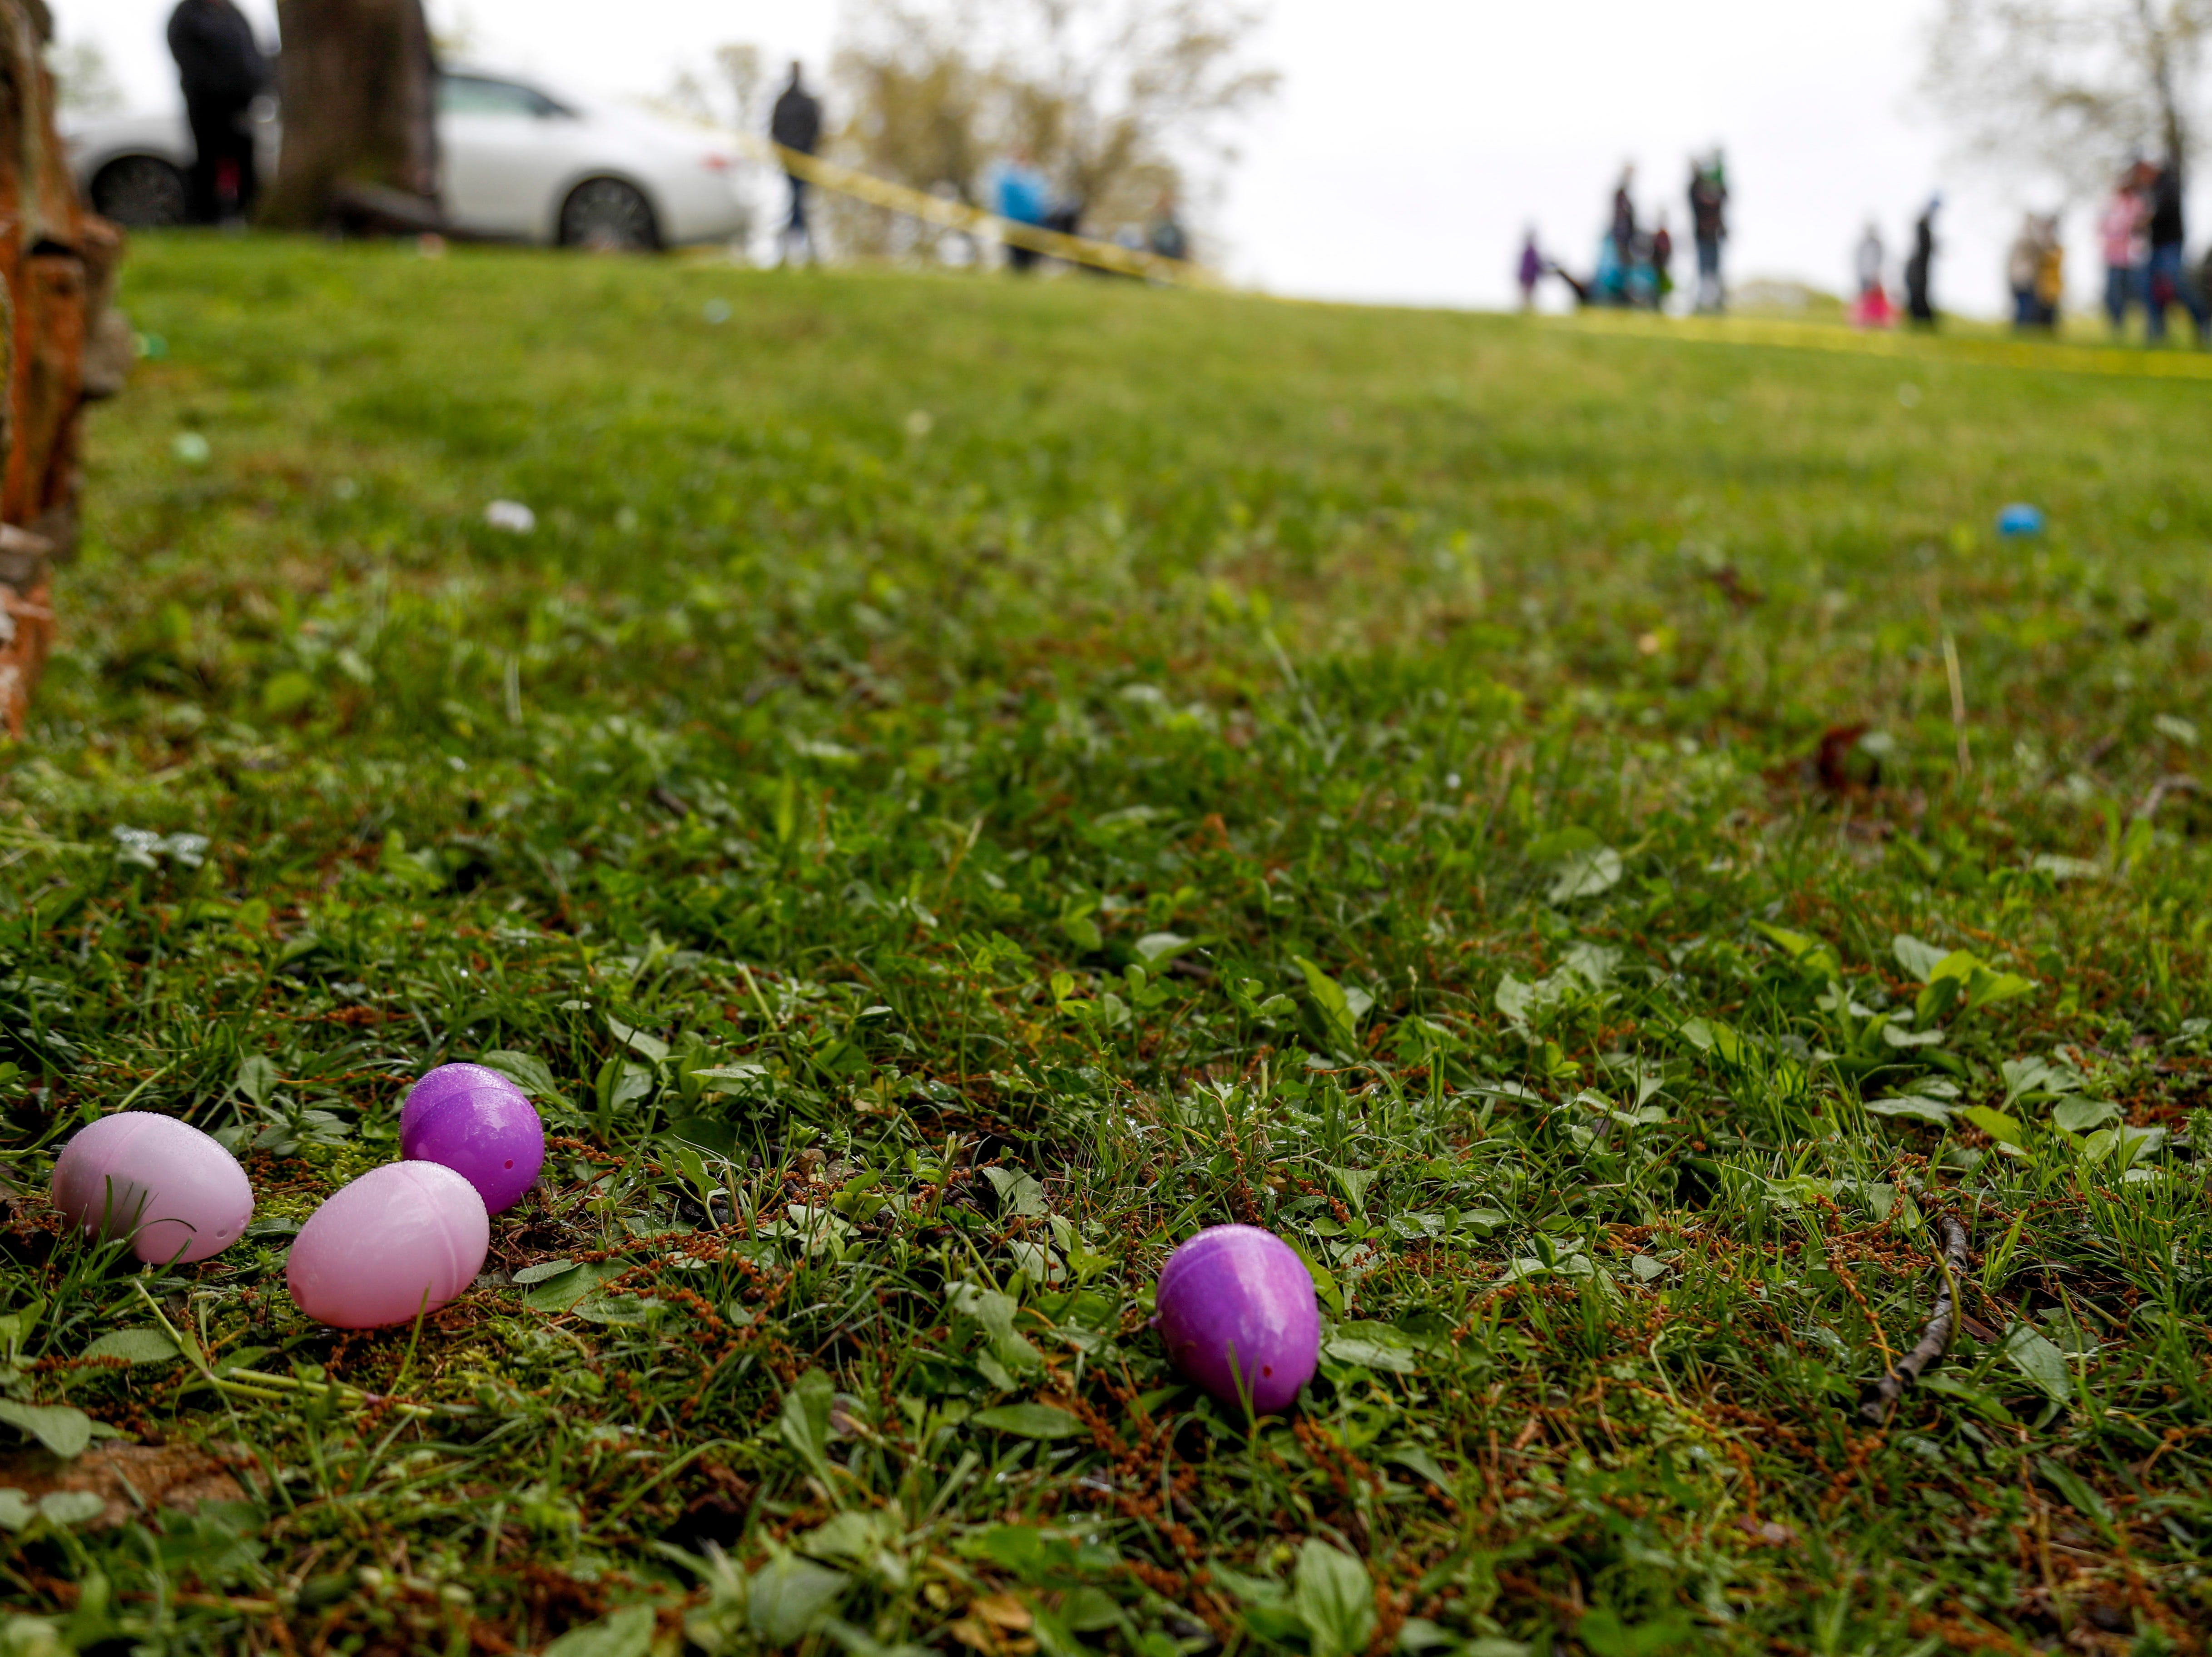 Eggs lie in the grass waiting to be found at the annual Easter egg hunts at Historic Collinsville in Clarksville, Tenn., on Saturday, April 20, 2019.